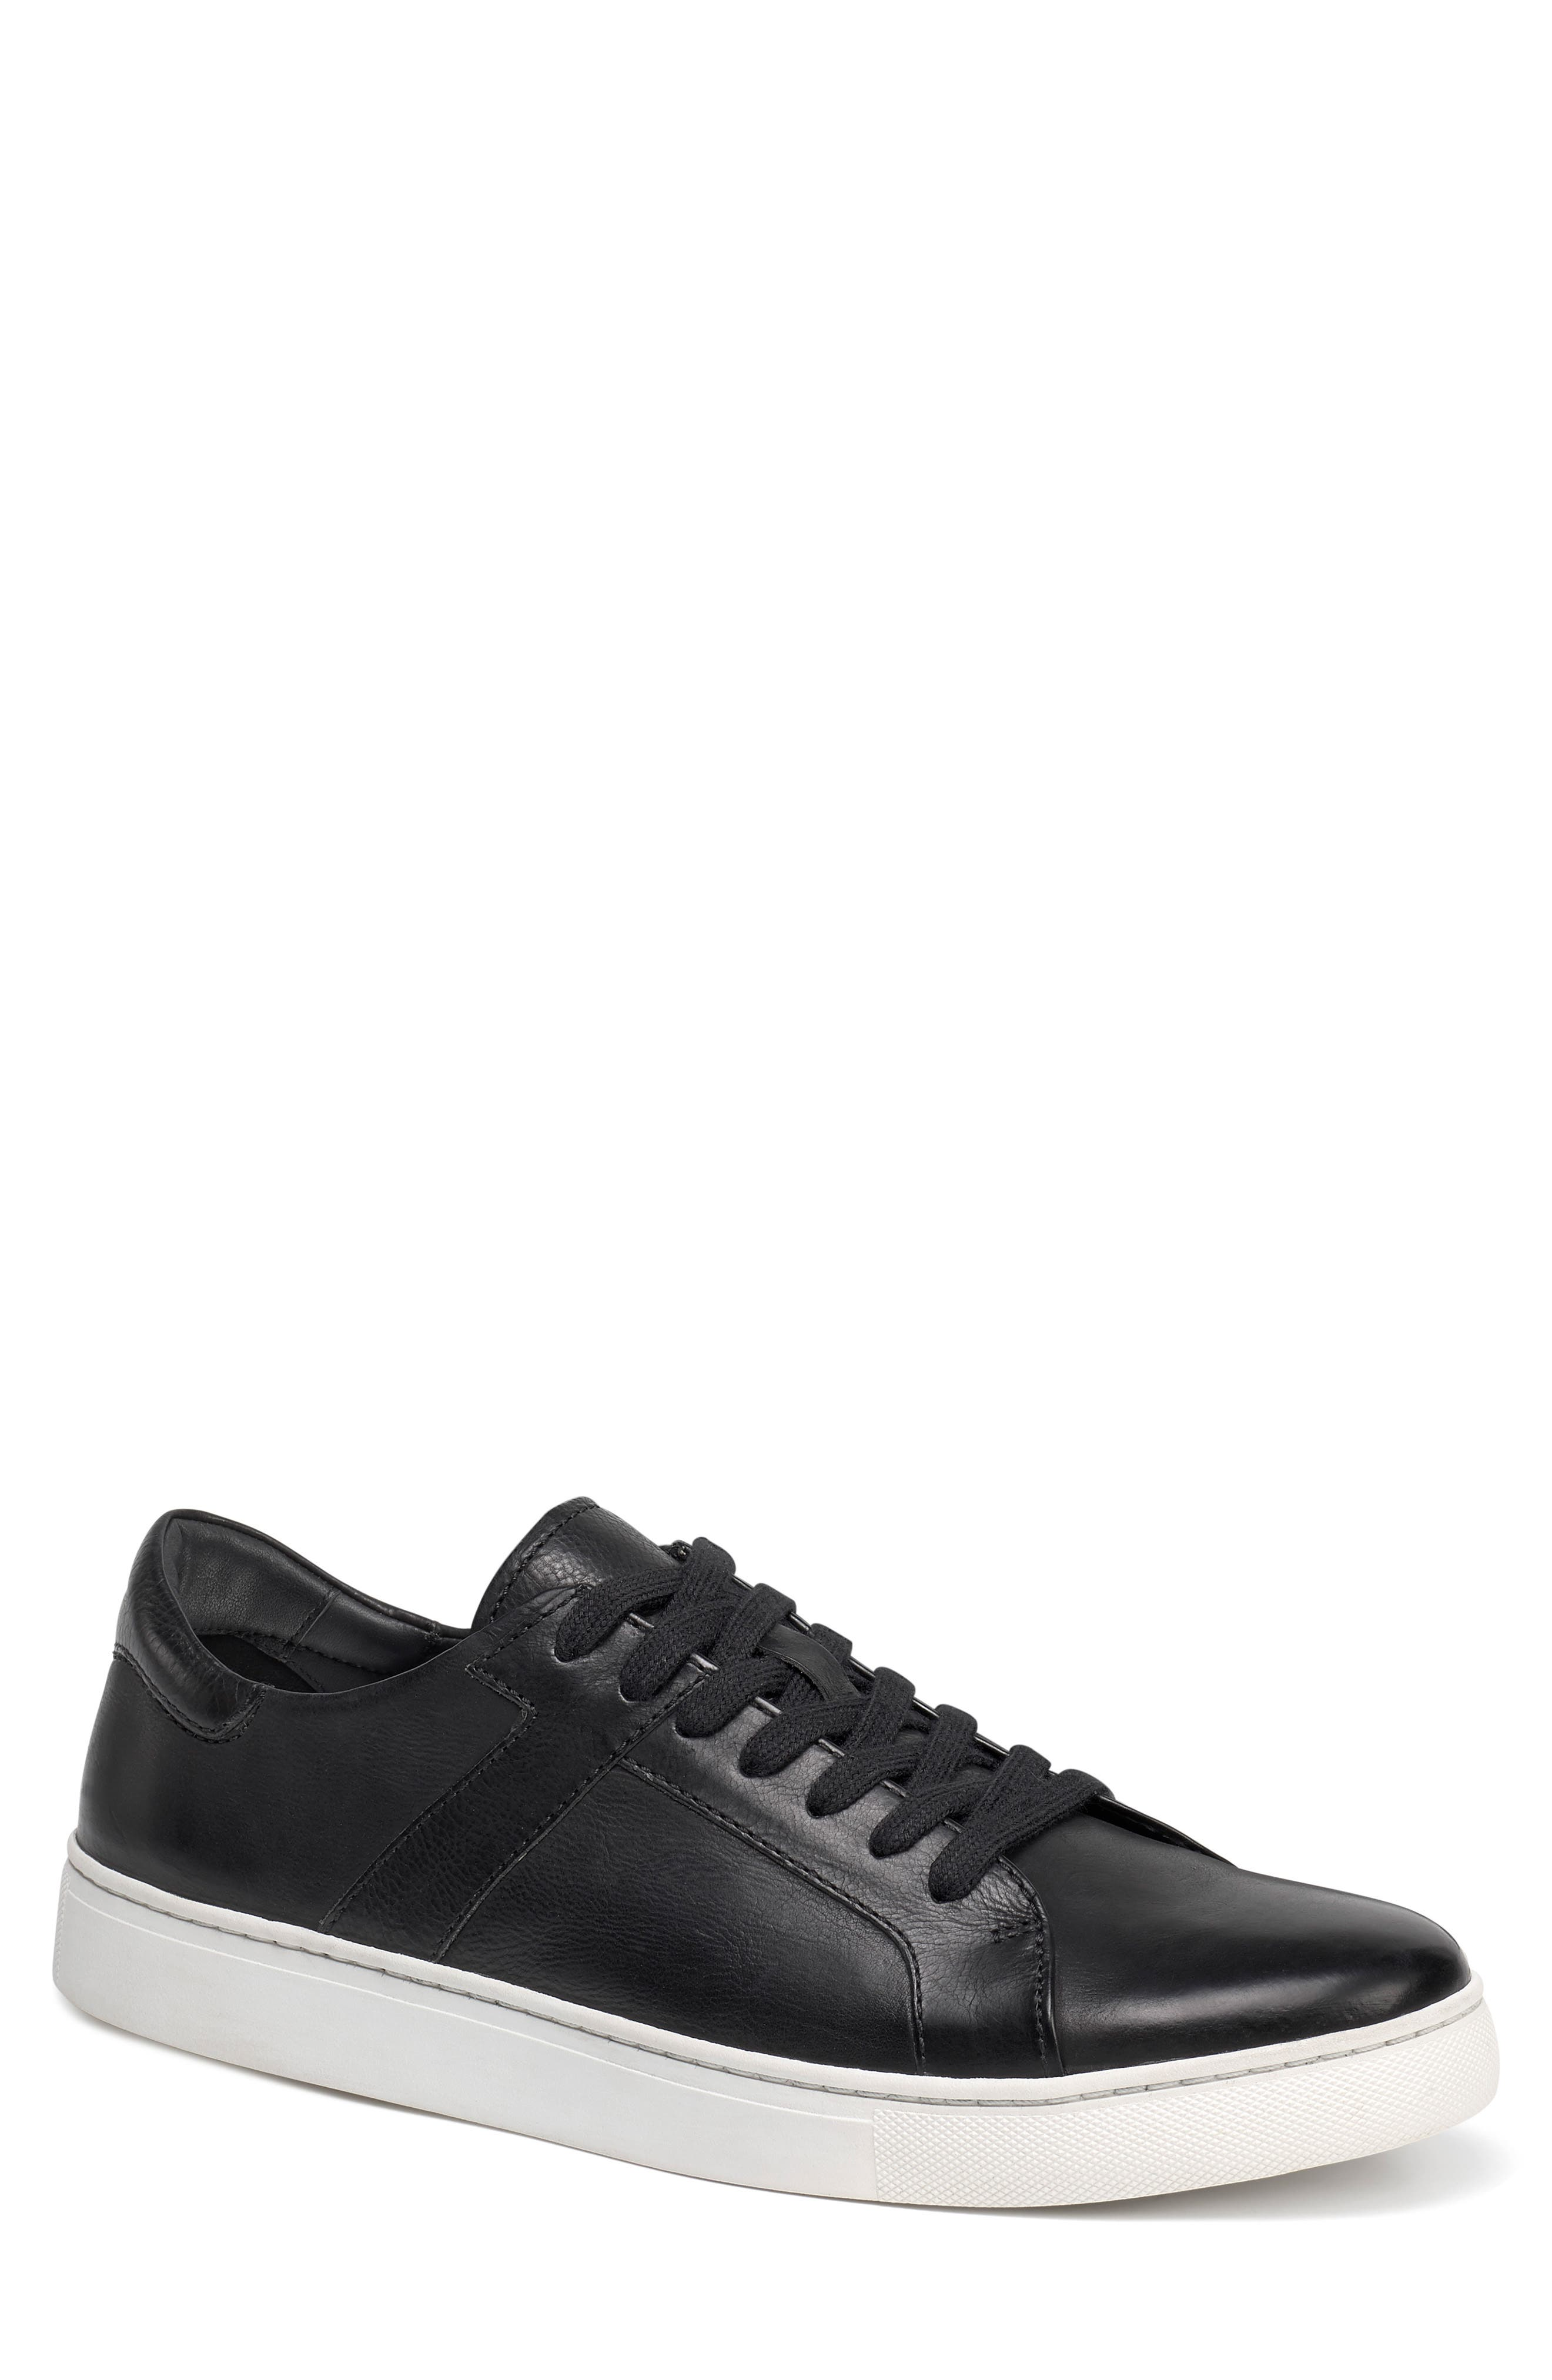 Aaron Sneaker,                         Main,                         color, BLACK LEATHER